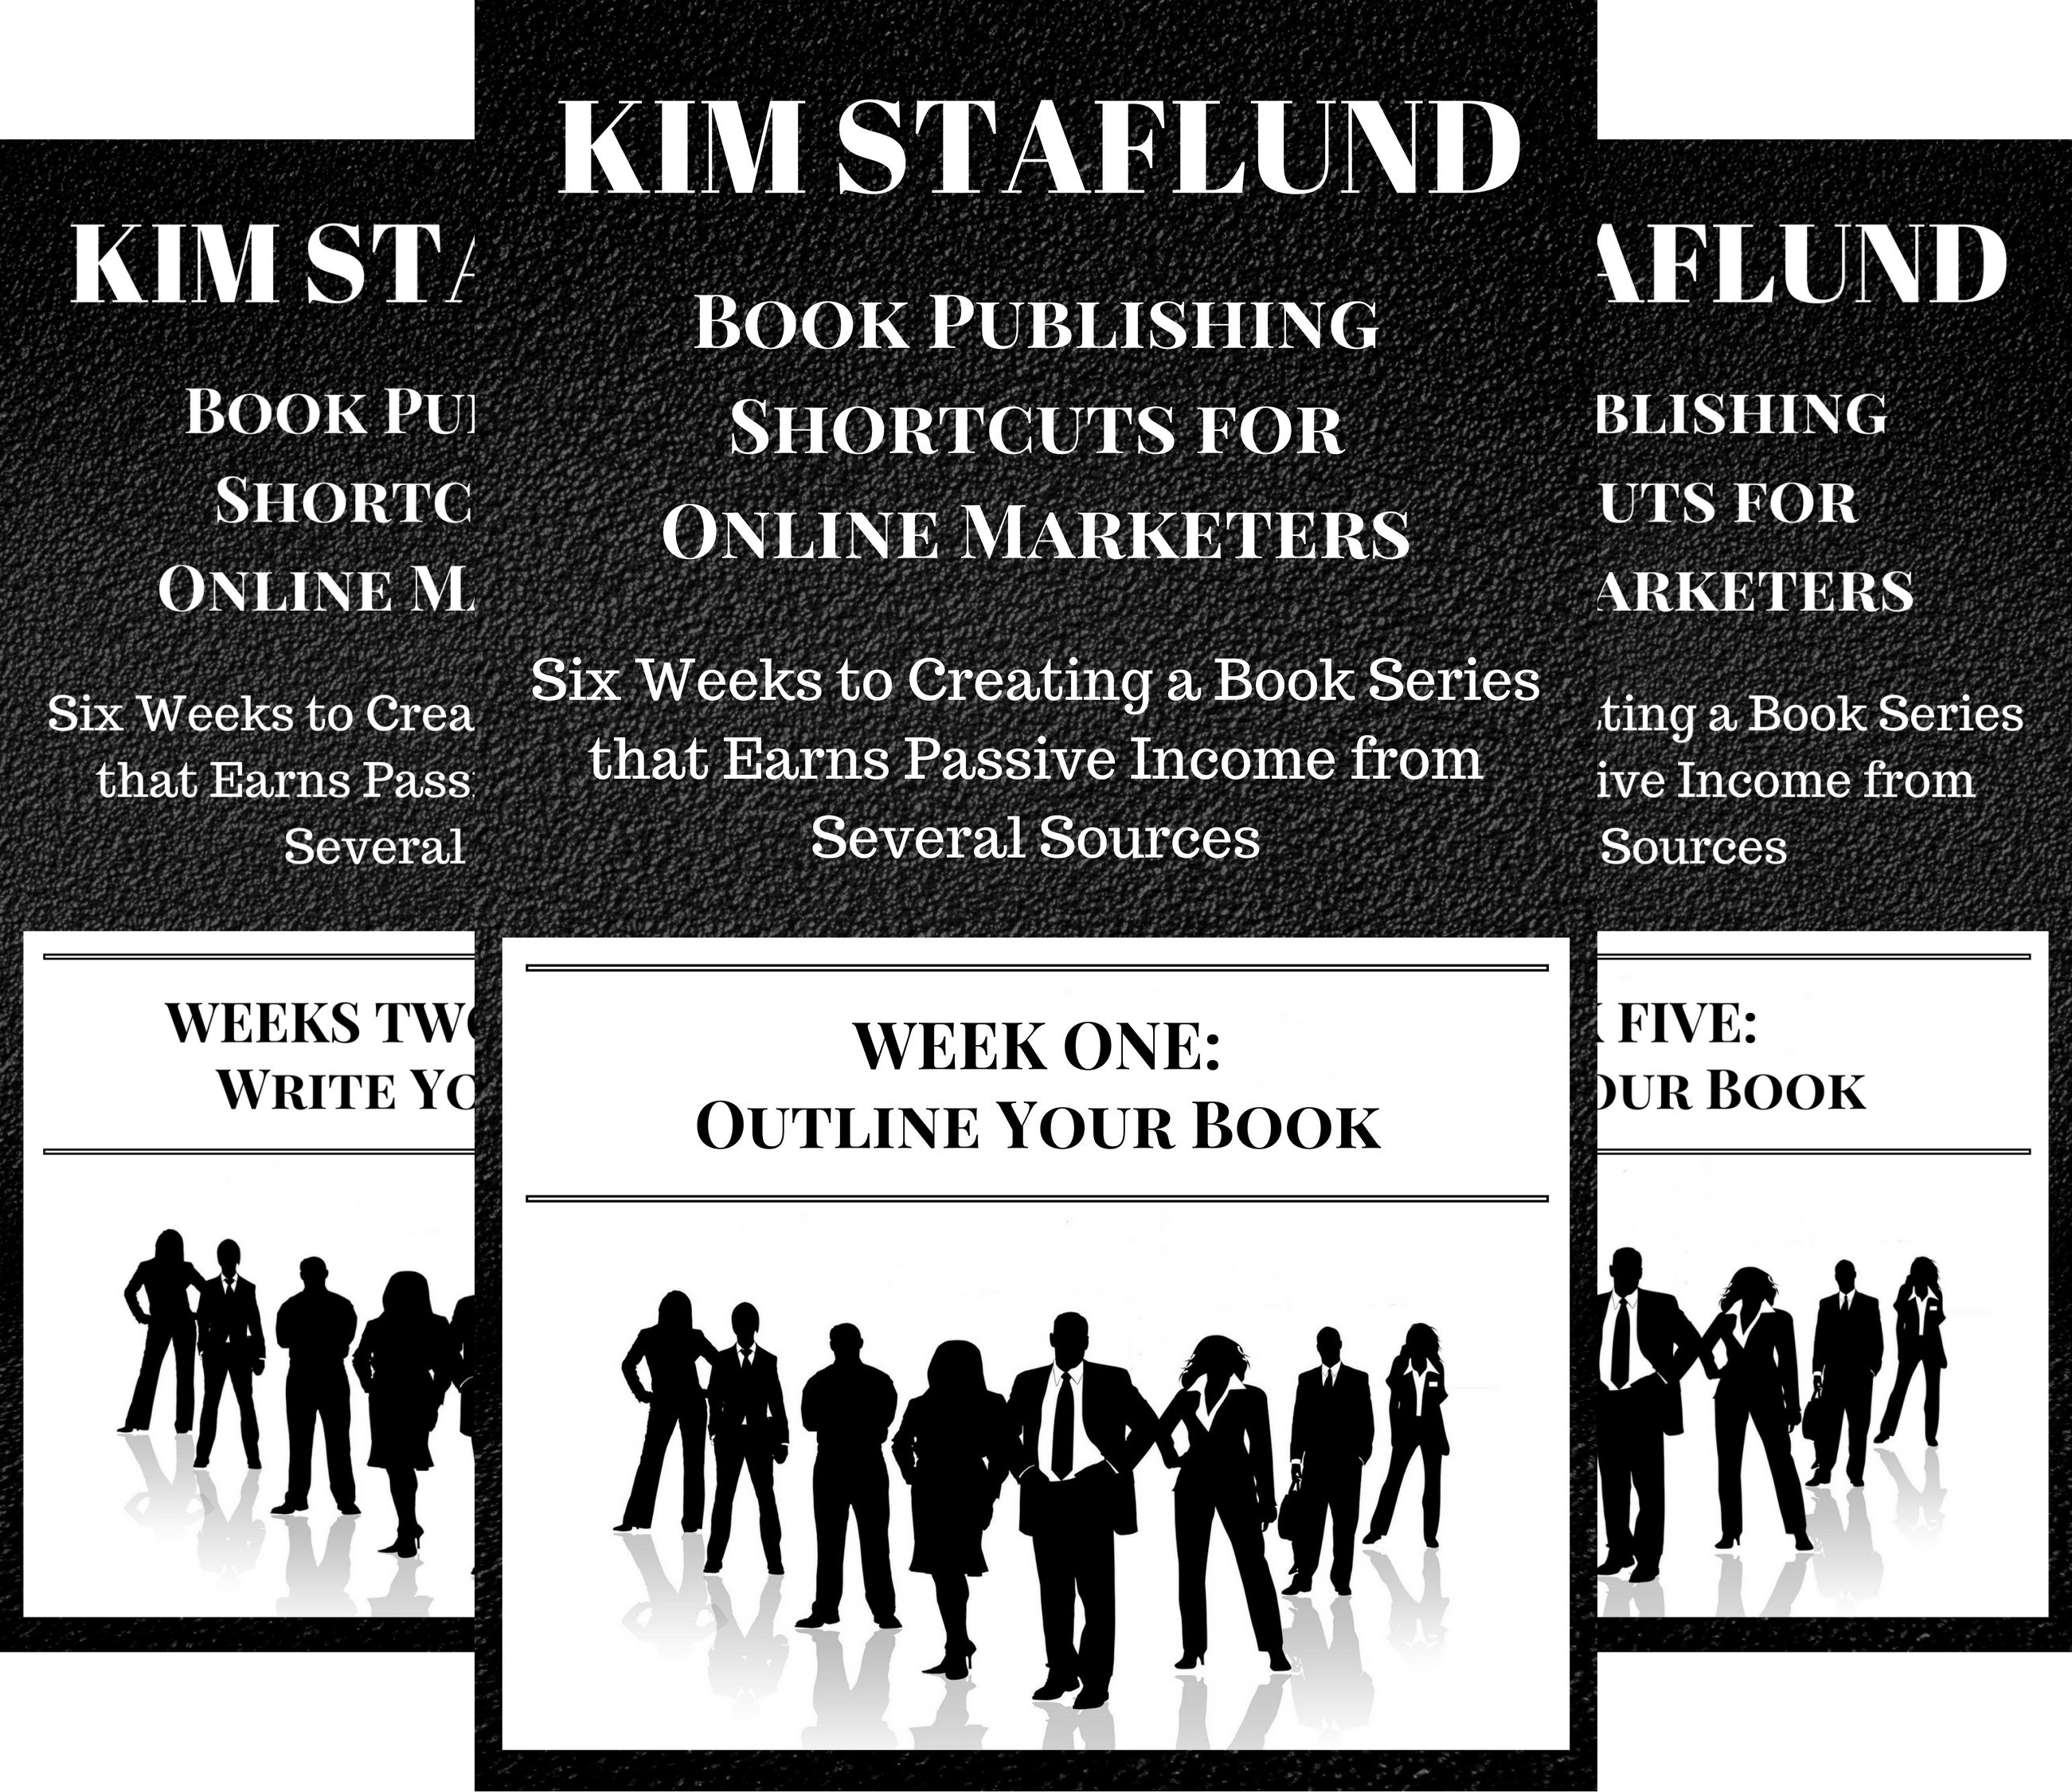 Book Publishing Shortcuts for Online Marketers (4 Book Series)